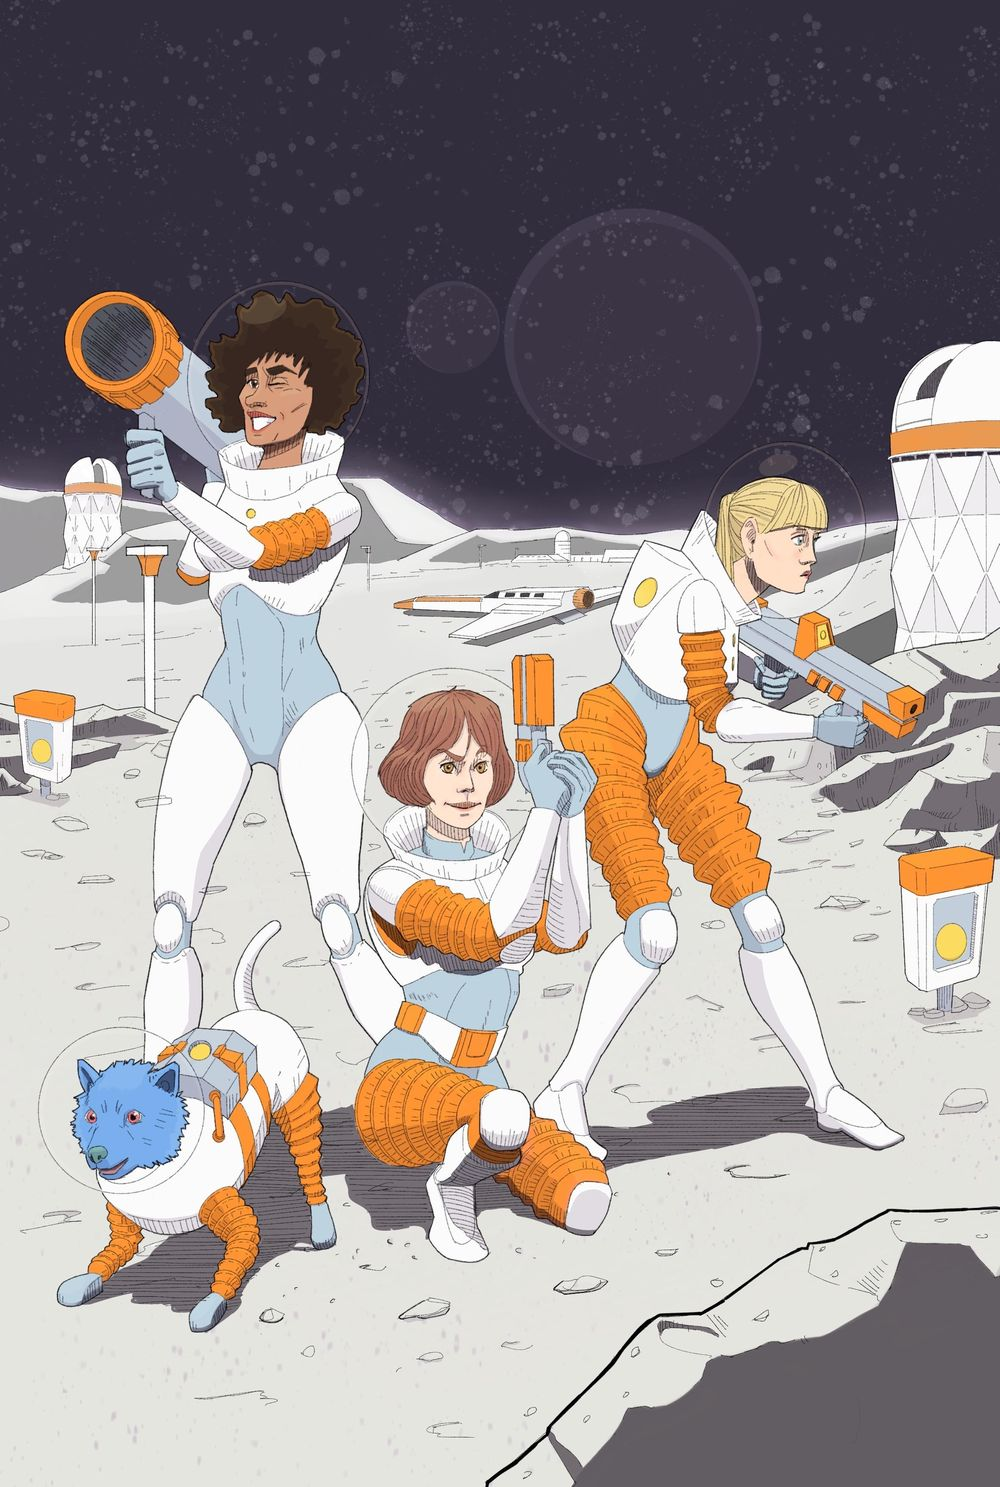 Space Girls - image 1 - student project